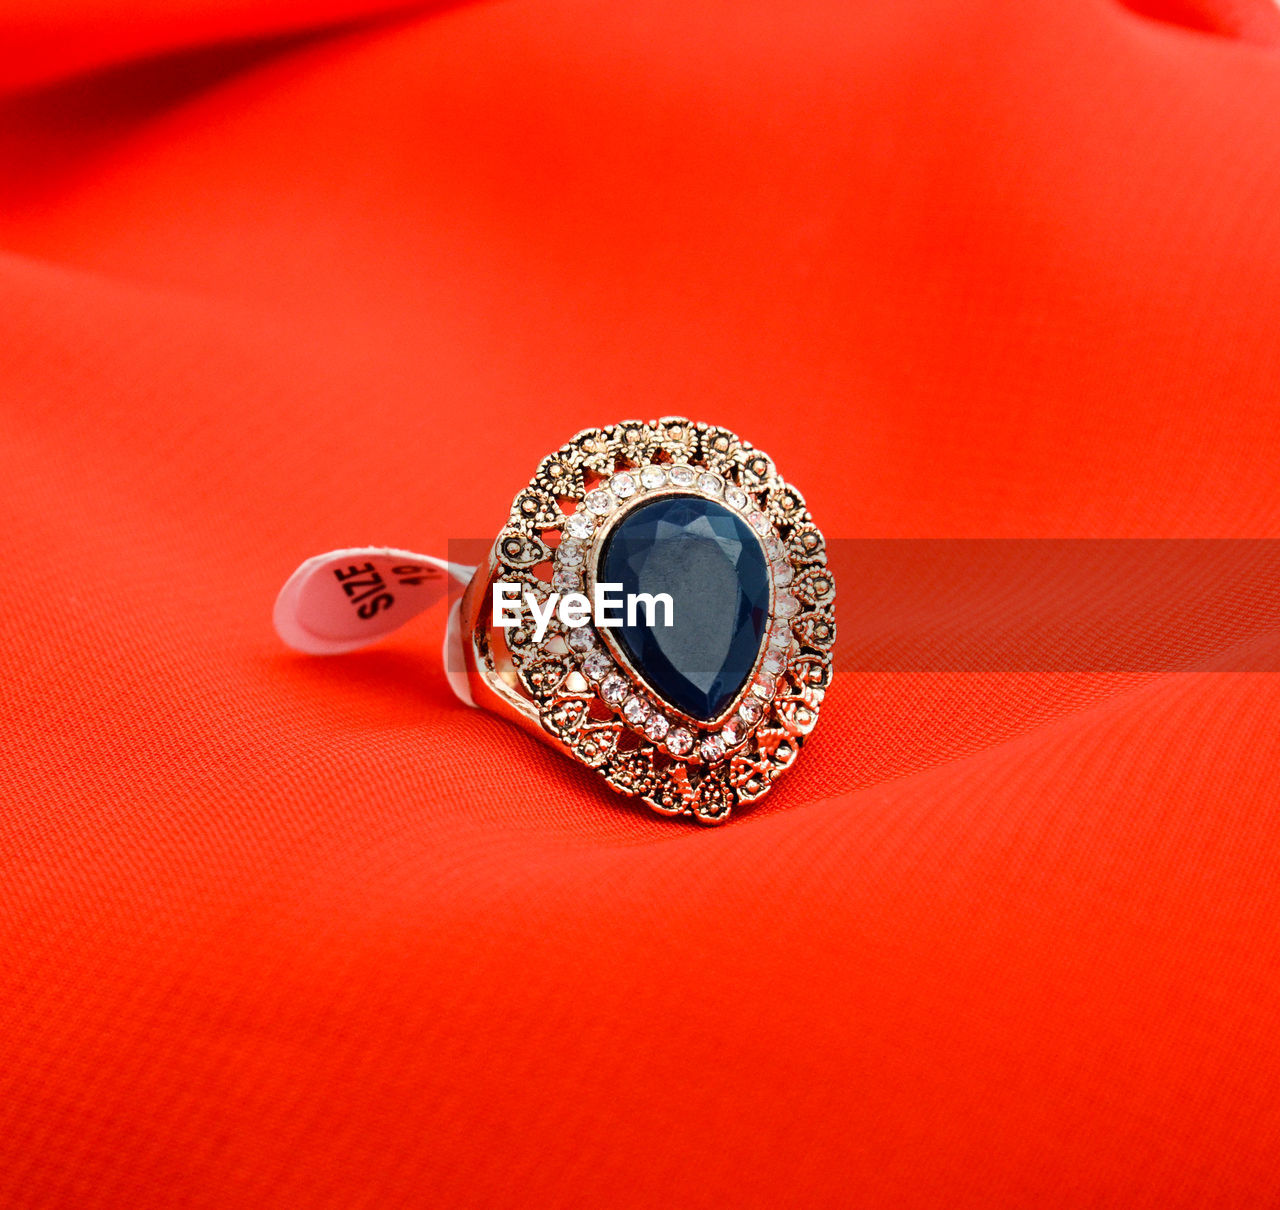 jewelry, single object, ring, no people, luxury, indoors, red, studio shot, precious gem, diamond ring, close-up, day